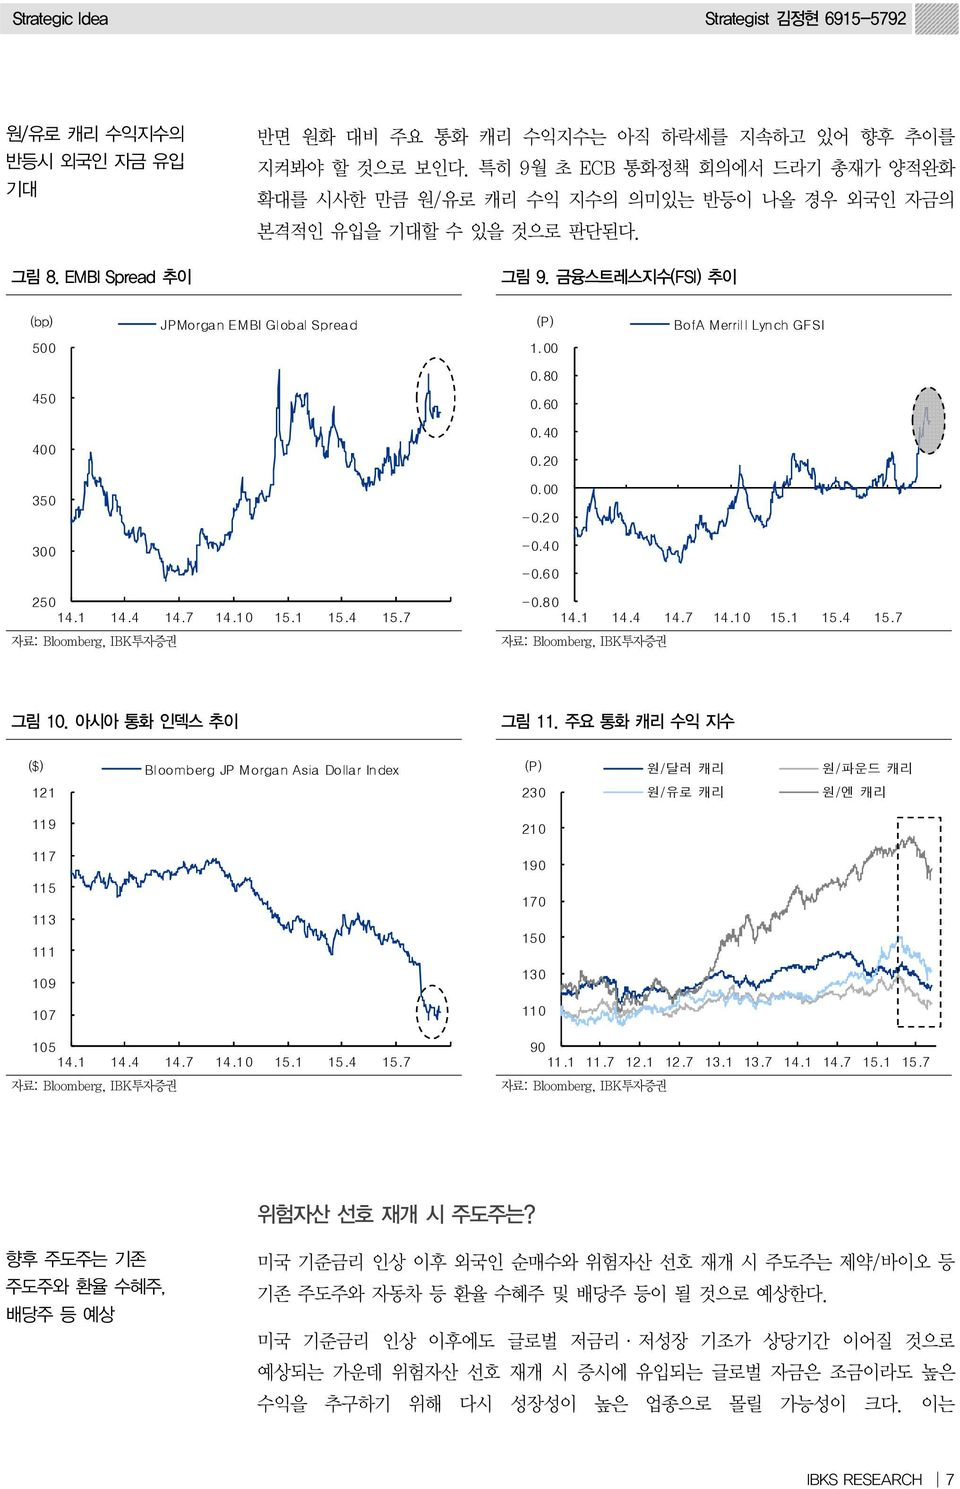 금융스트레스지수(FSI) 추이 (bp) JPMorgan EMBI Global Spread (P) BofA Merrill Lynch GFSI 500 1.00 0.80 450 0.60 400 0.40 0.20 350 0.00-0.20 300-0.40-0.60 250 14.1 14.4 14.7 14.10 15.1 15.4 15.7-0.80 14.1 14.4 14.7 14.10 15.1 15.4 15.7 그림 10.